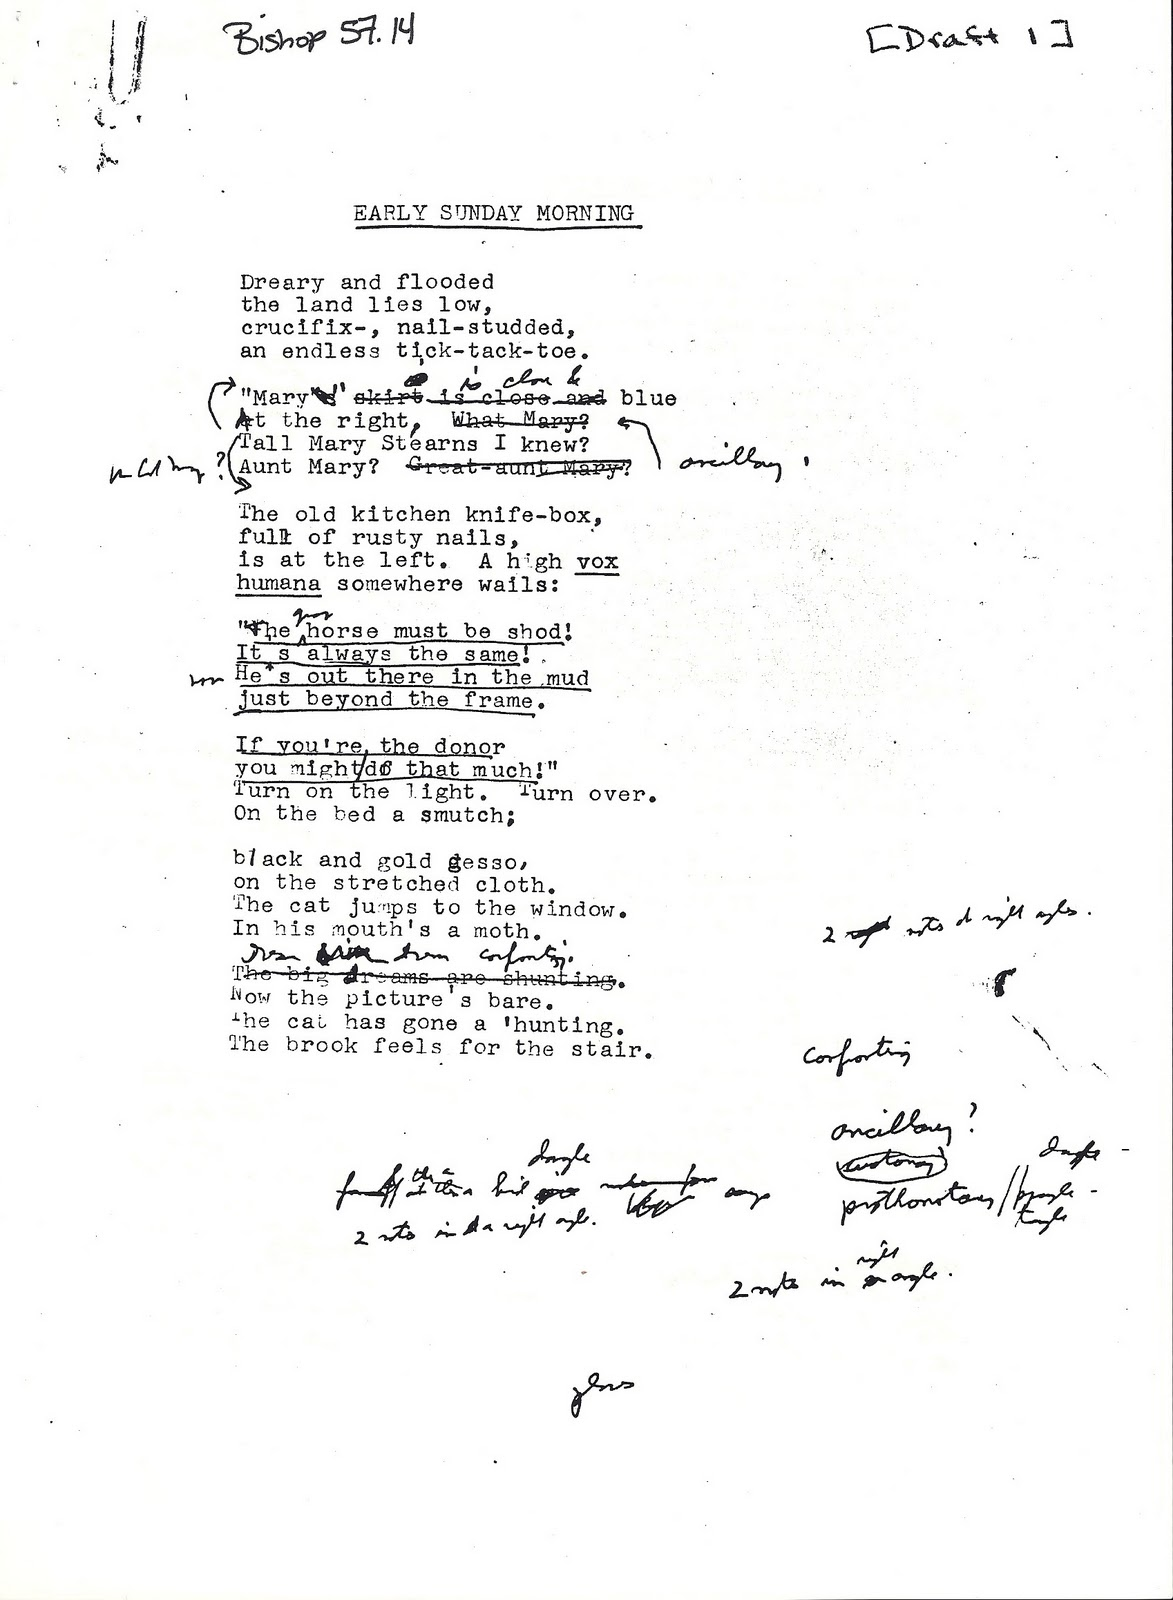 essays on poetry bluedragonfly draft one sunday 4 a m from the bishop papers in the vassar college libraries